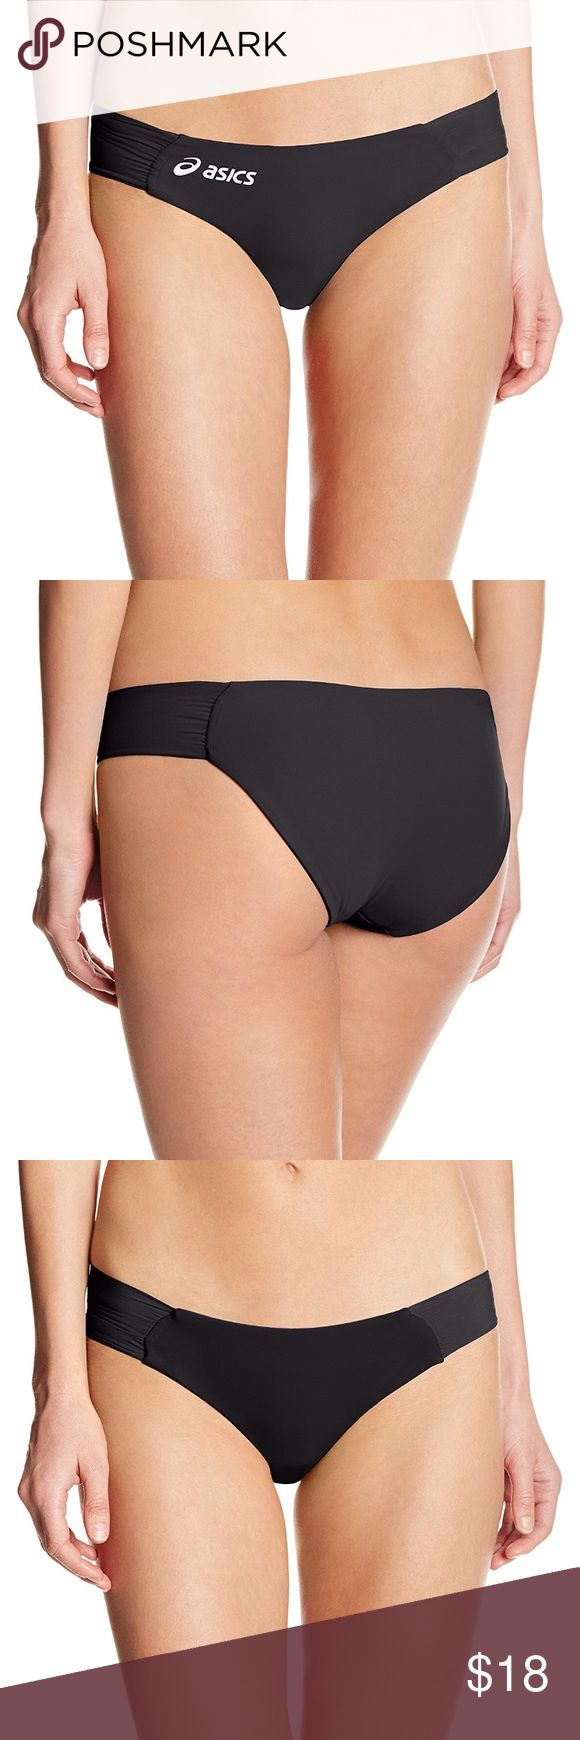 SALE! NEW Black Asics Bikini Bottom New without tags. Asics KELI Reversible Bikini Bottom. Made in USA. Women's extra large. Asics Swim Bikinis